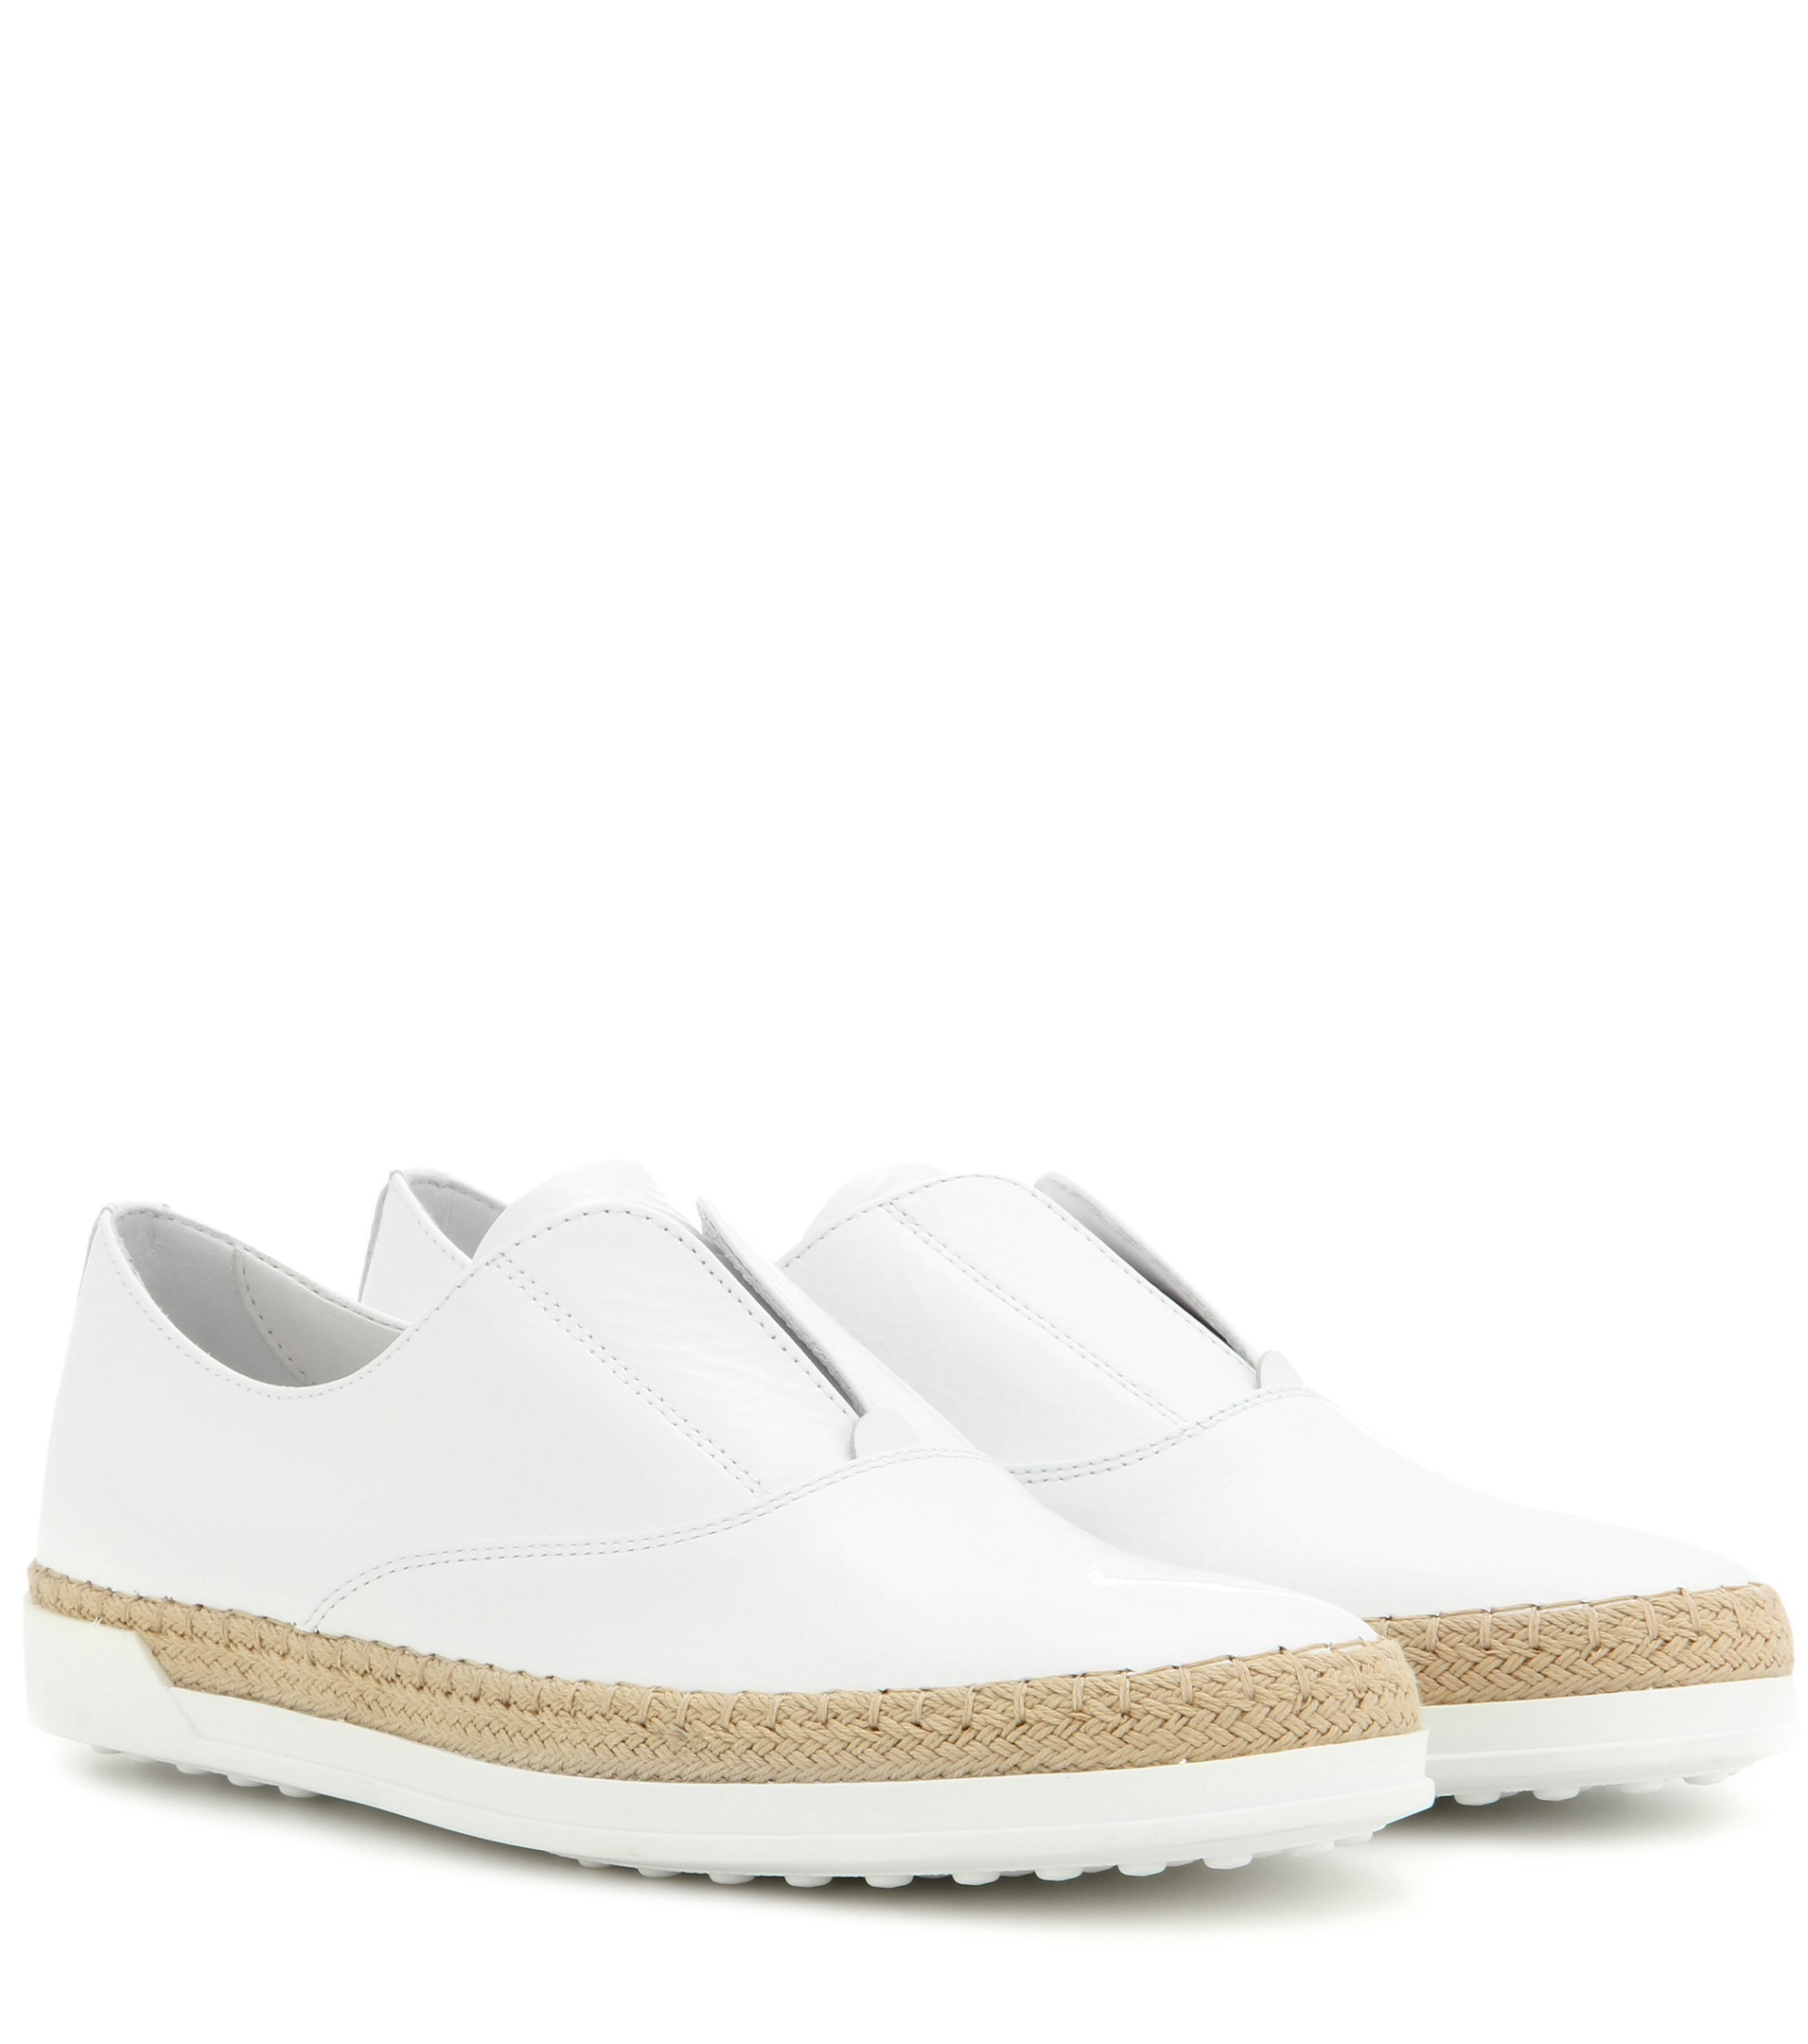 Sneaker bast calfskin smooth leather white Tod's FGJd6M